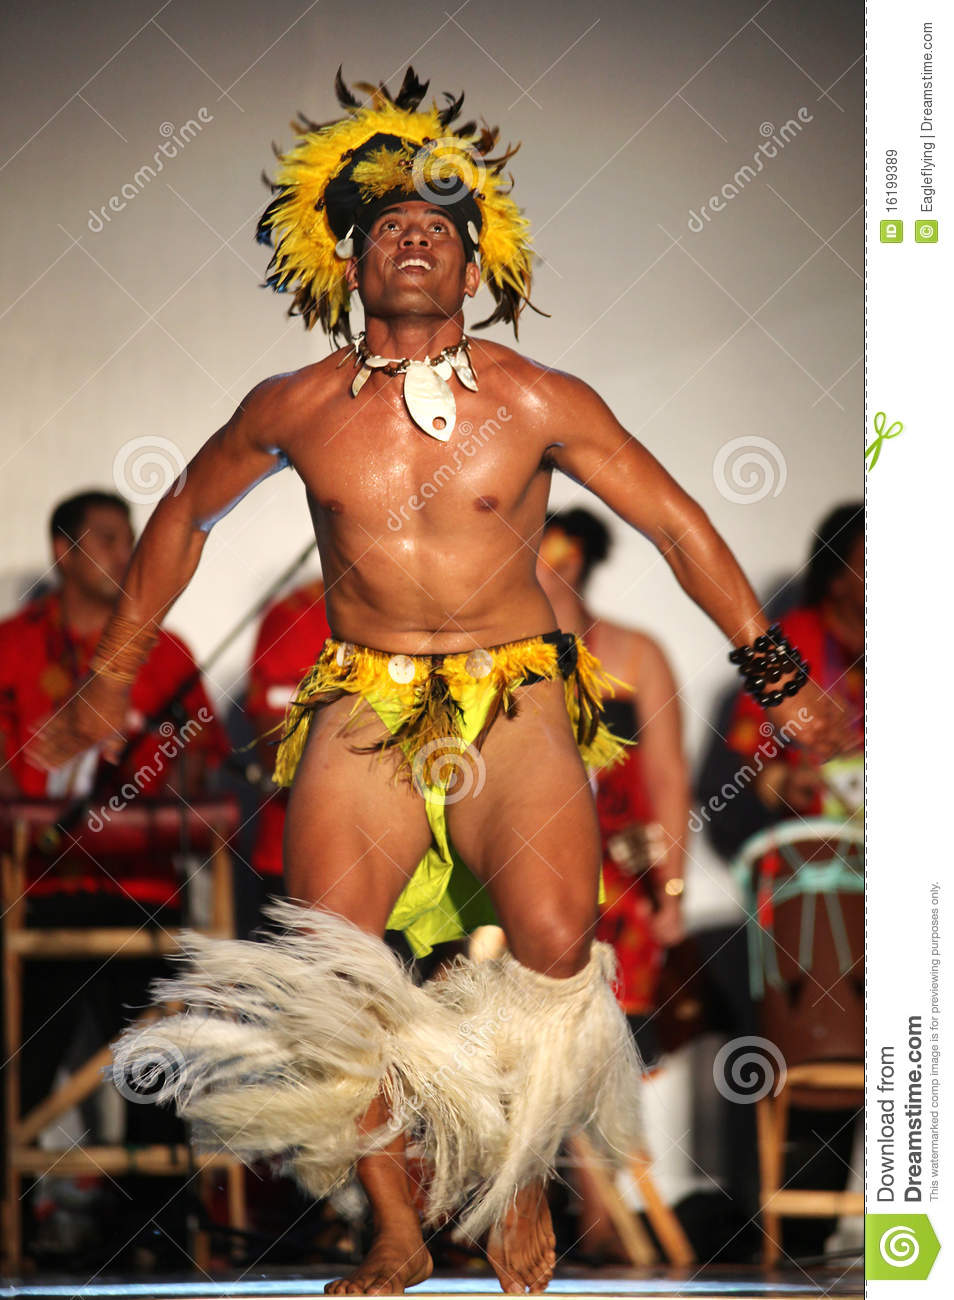 What is the National costume for the Cook Islands?